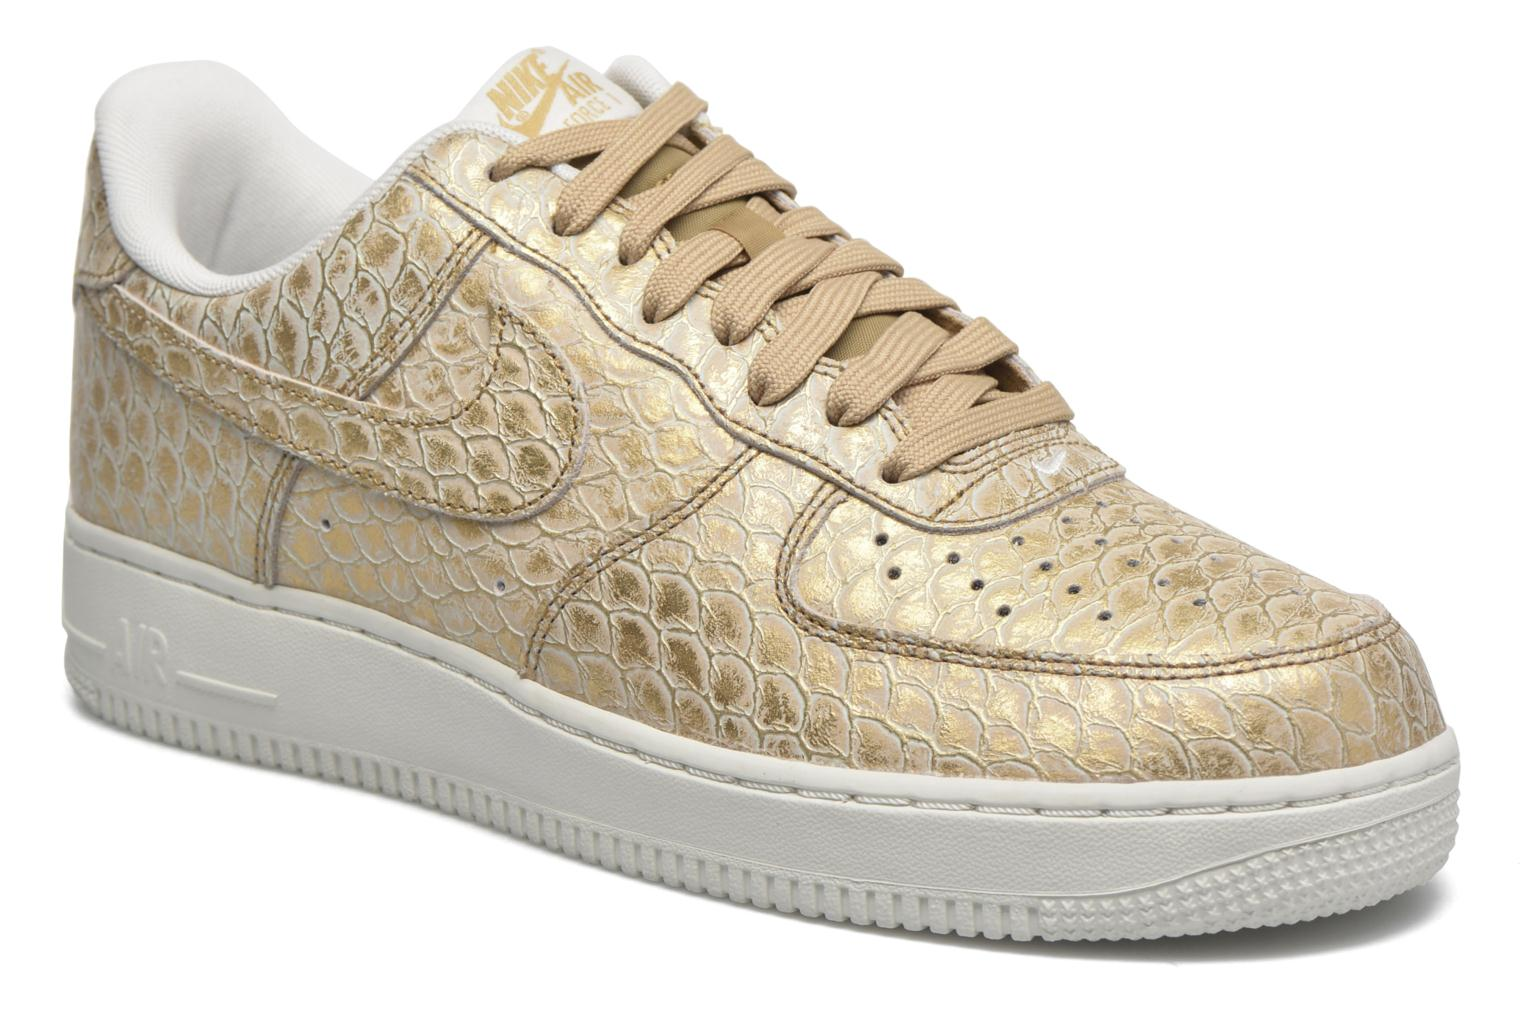 Air Force 1 '07 Lv8 Mtllc Gold/Mtllc Gld-Smmt Wht